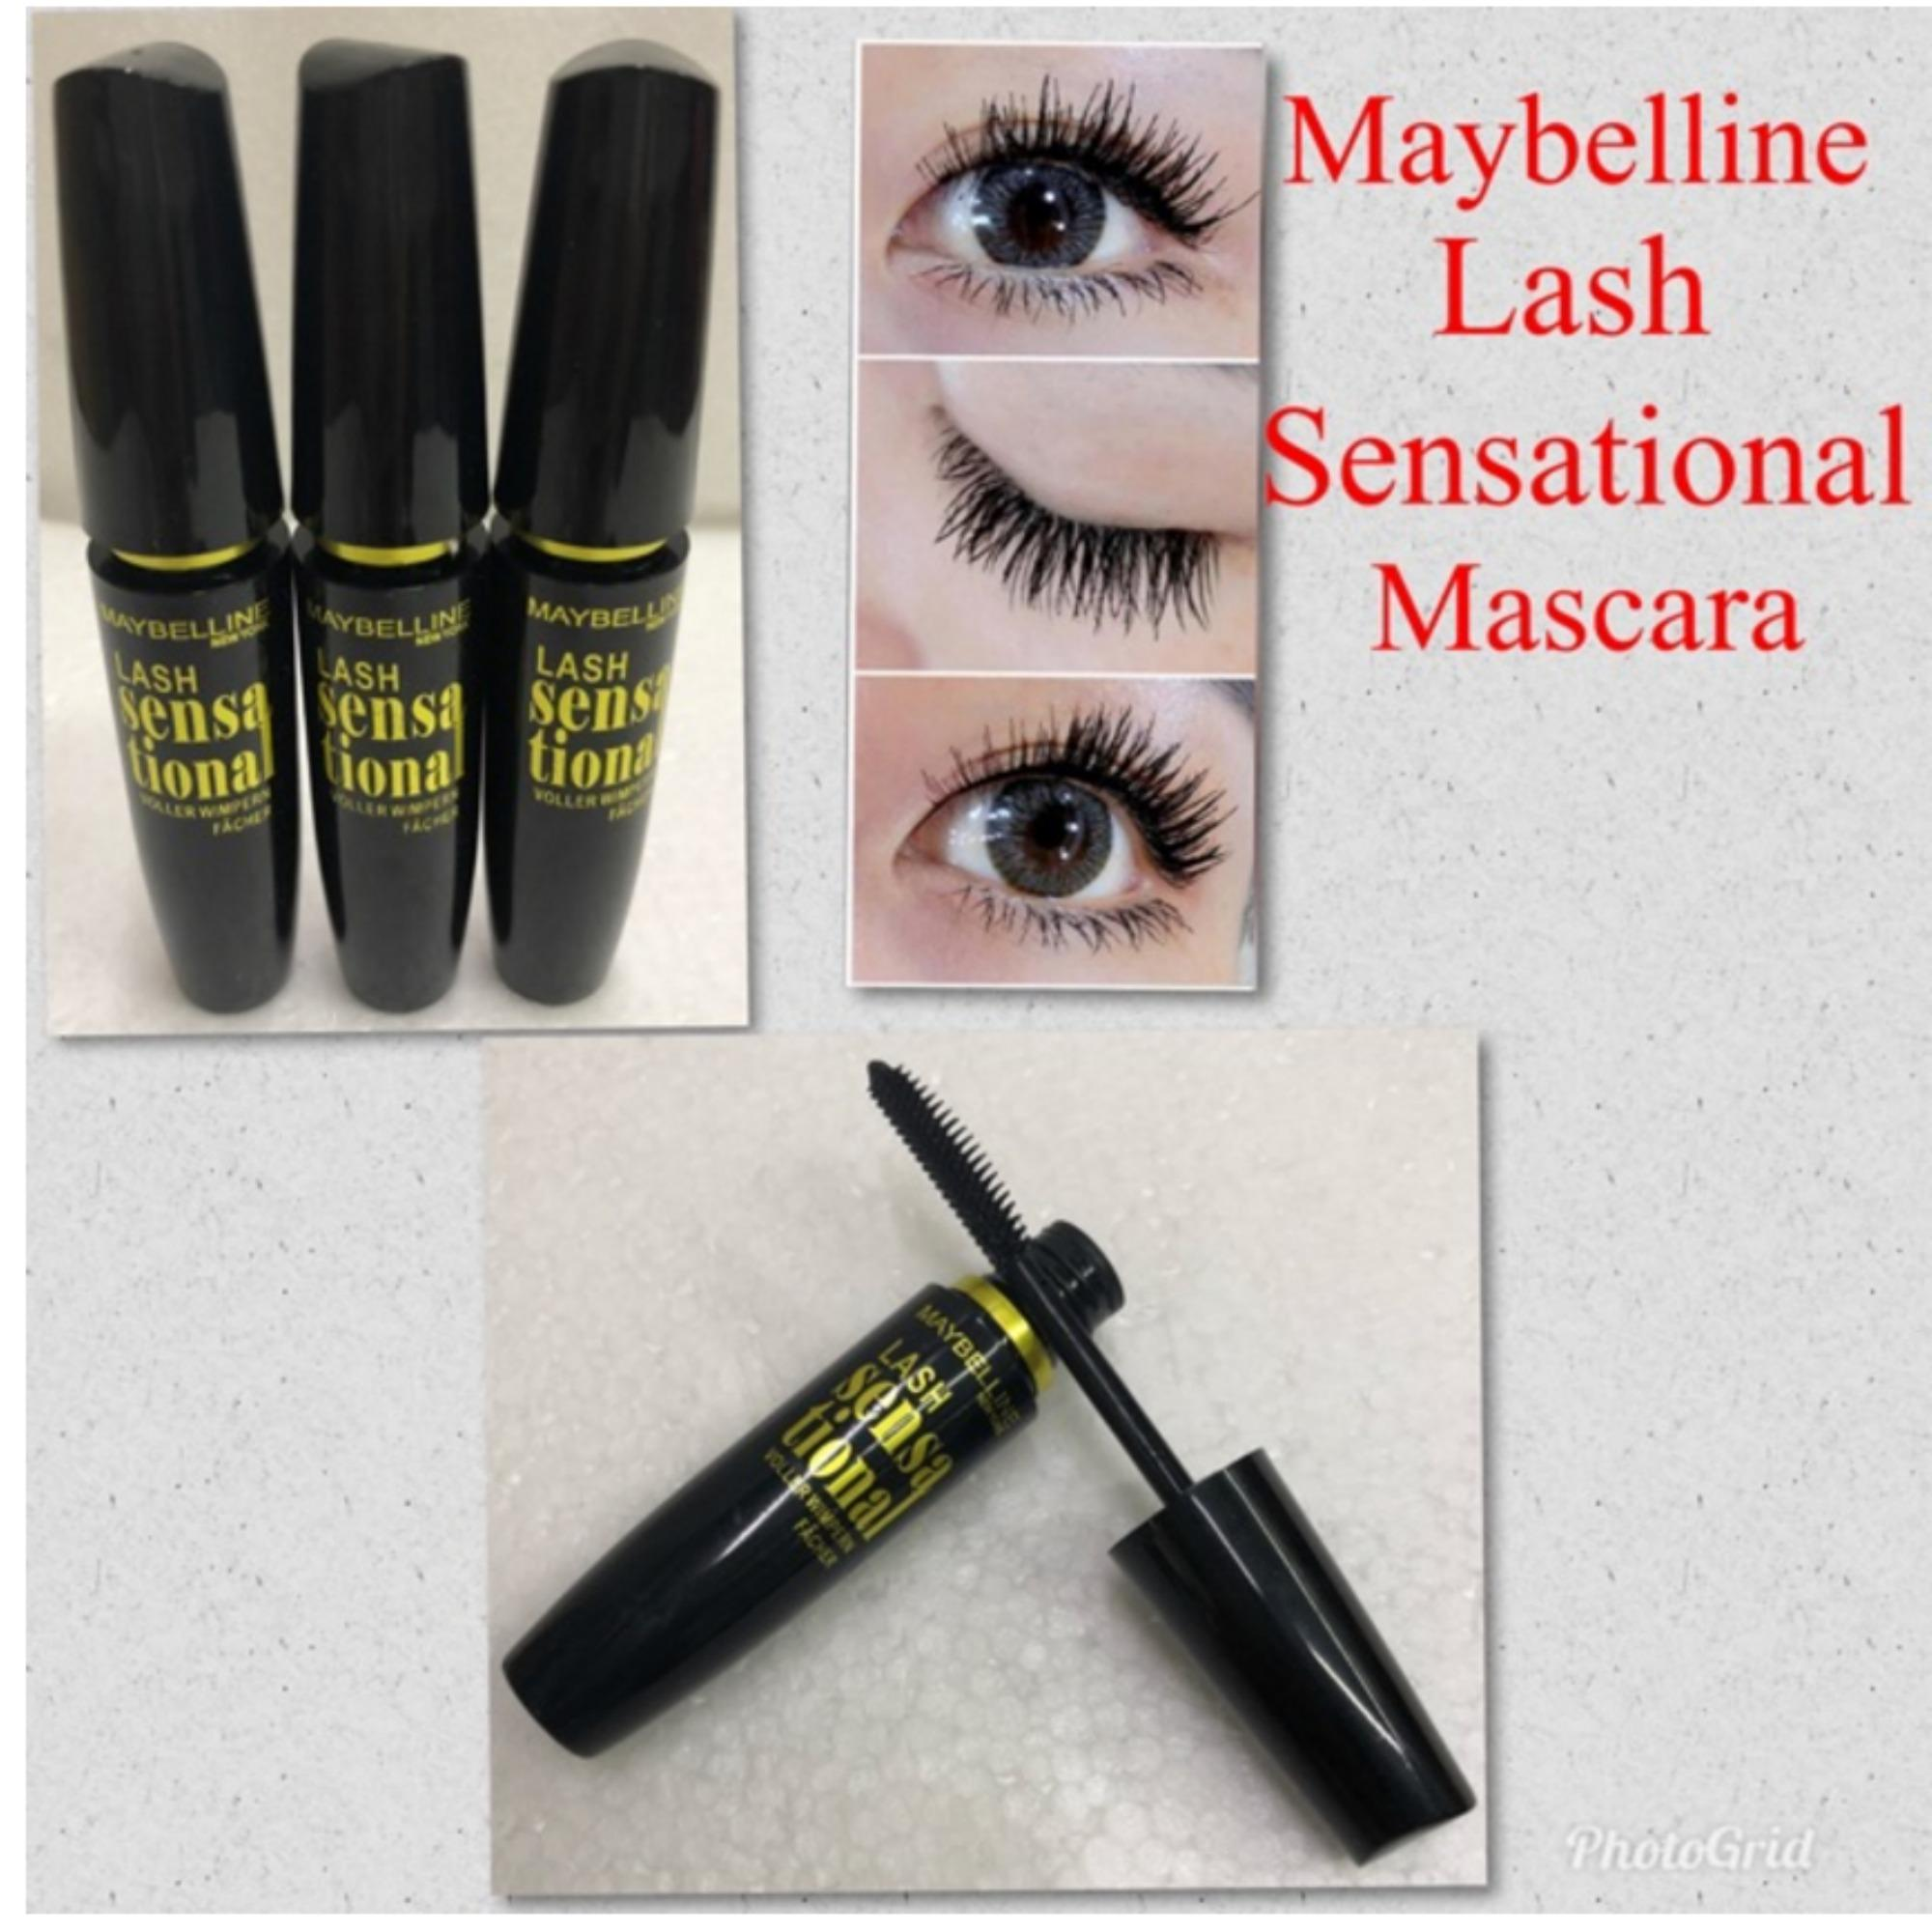 Maybelline Philippines Mascara For Sale Prices Barbie The Magnum Volum Express Waterproof Reviews Lazada